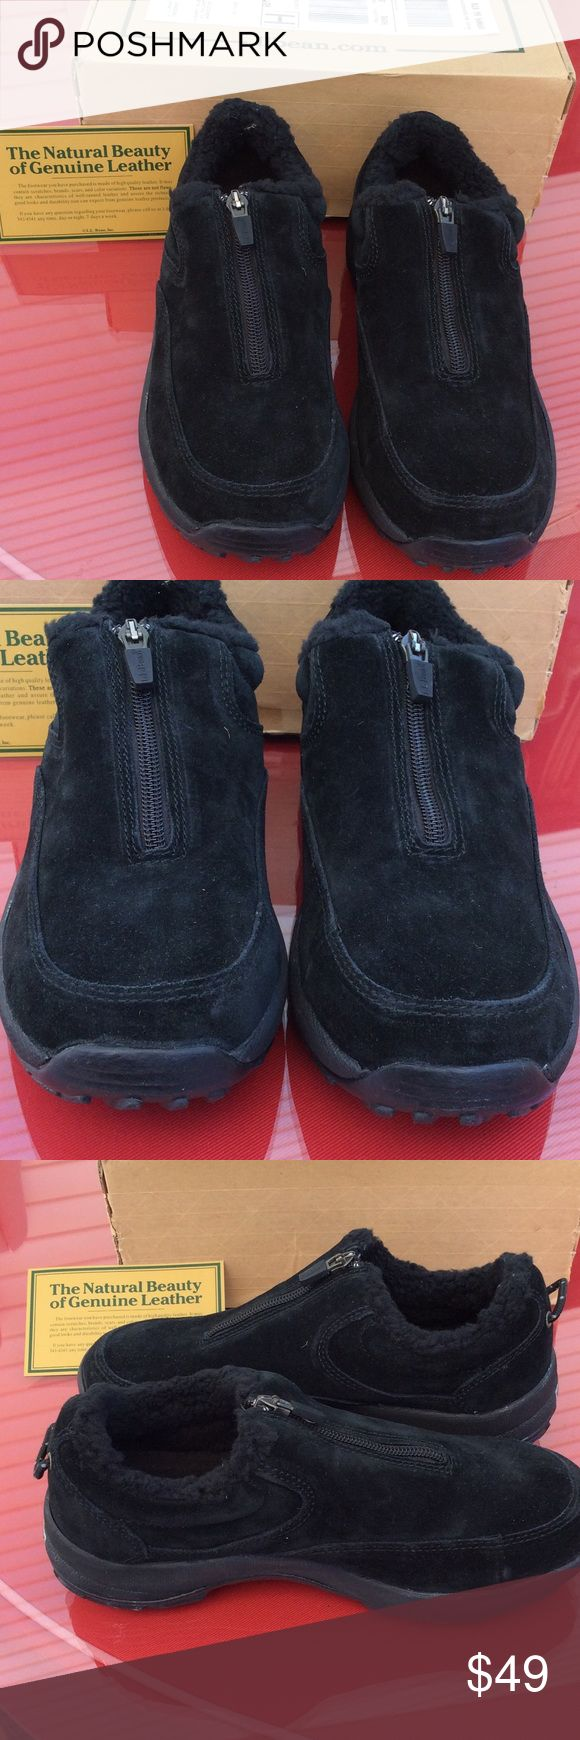 LL Bean suede black shoes LL Bean black suede shoes only tried not once size 7.  7/8/17 LL Bean Shoes Ankle Boots & Booties